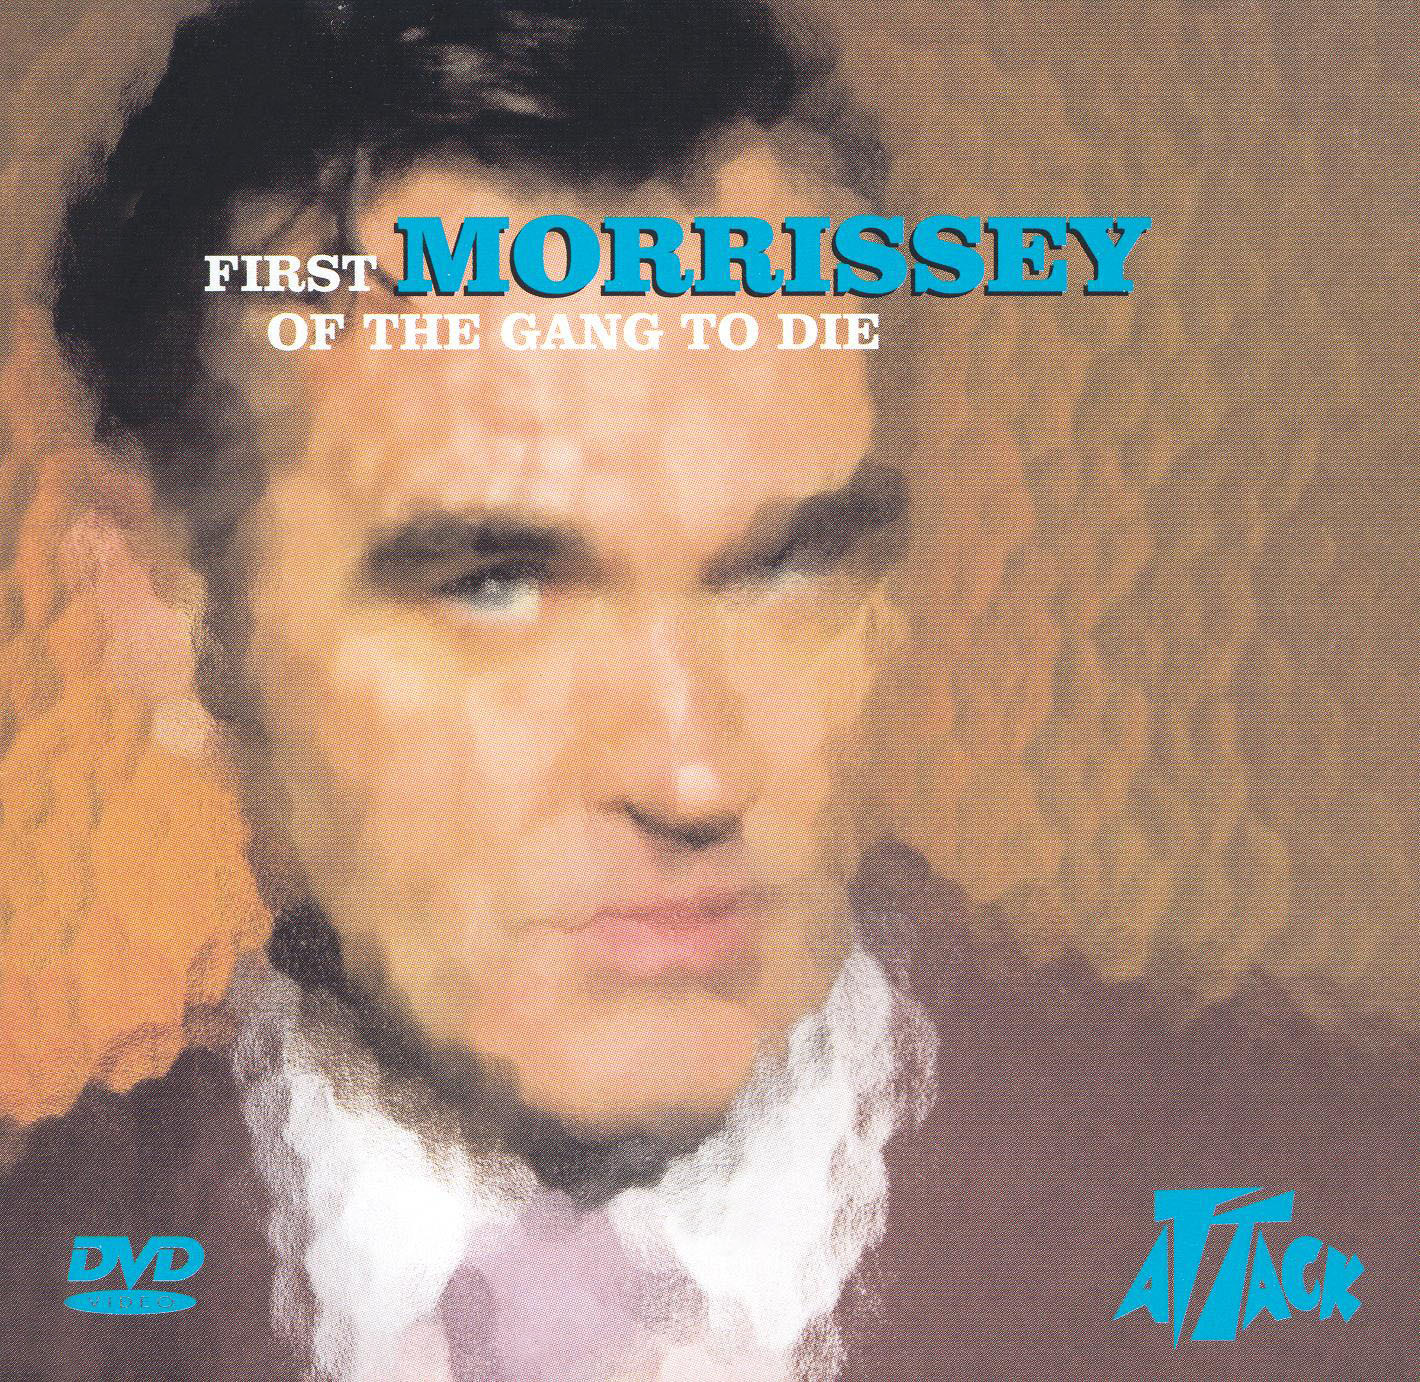 Morrissey: First of the Gang to Die